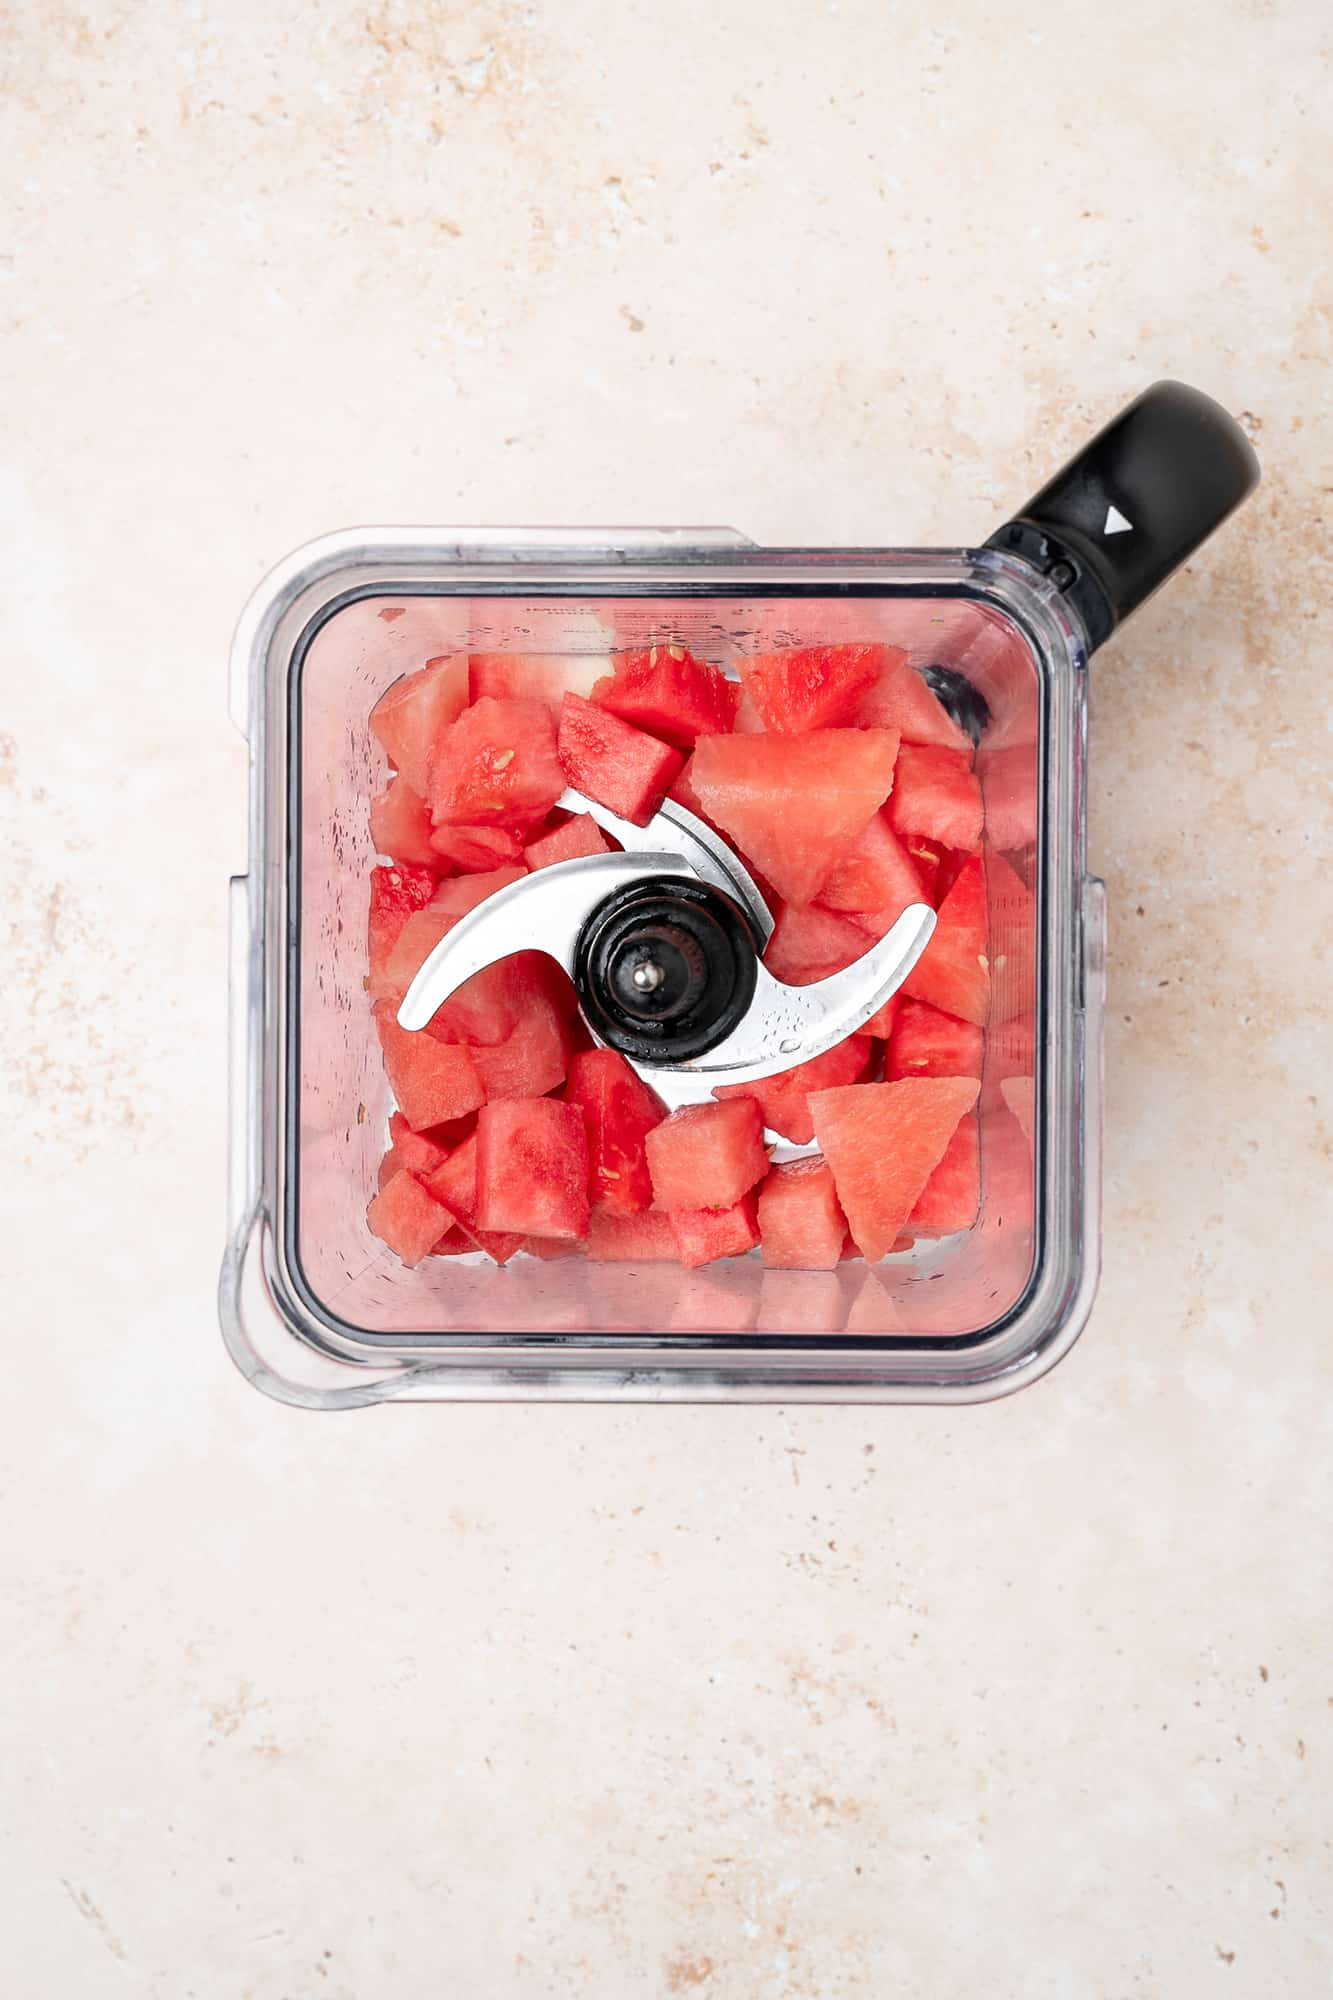 cubed watermelon in a blender